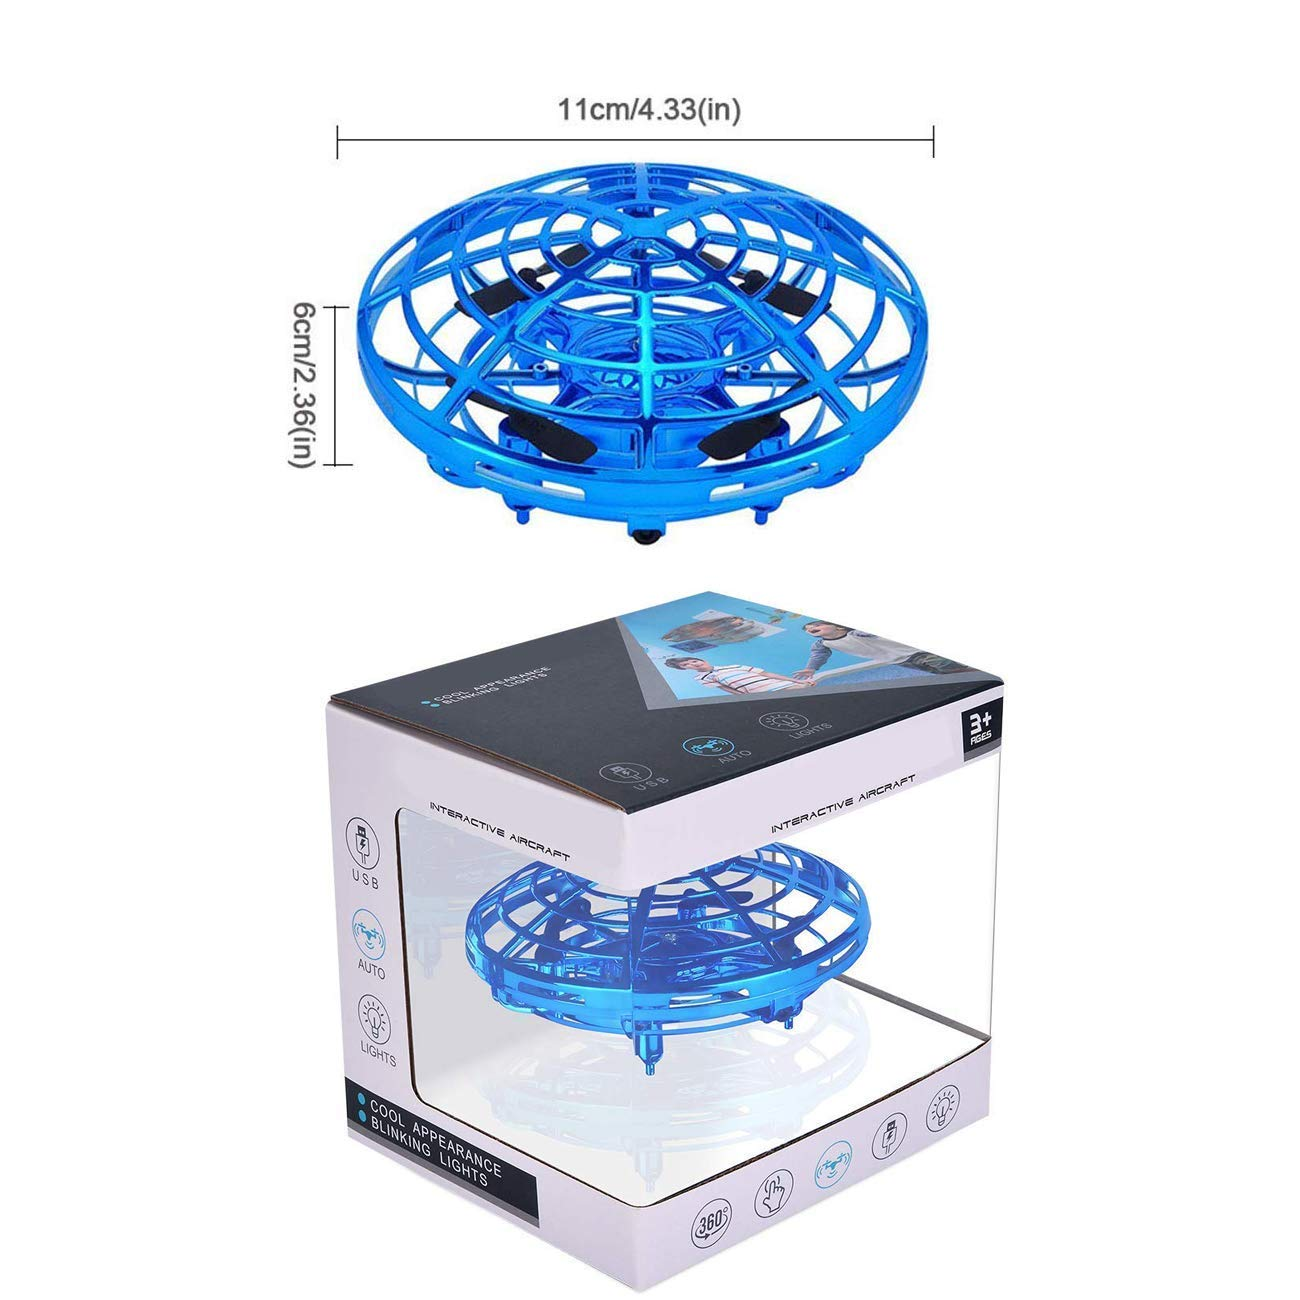 VENAS Flying Ball Toy Drones, Hand-Controlled Drone Quadcopter Flying Toys Interactive Infrared Induction Helicopter Ball with 360°Rotating and Flashing LED Lights for Boys and Girls Kids Gifts by VENAS (Image #7)